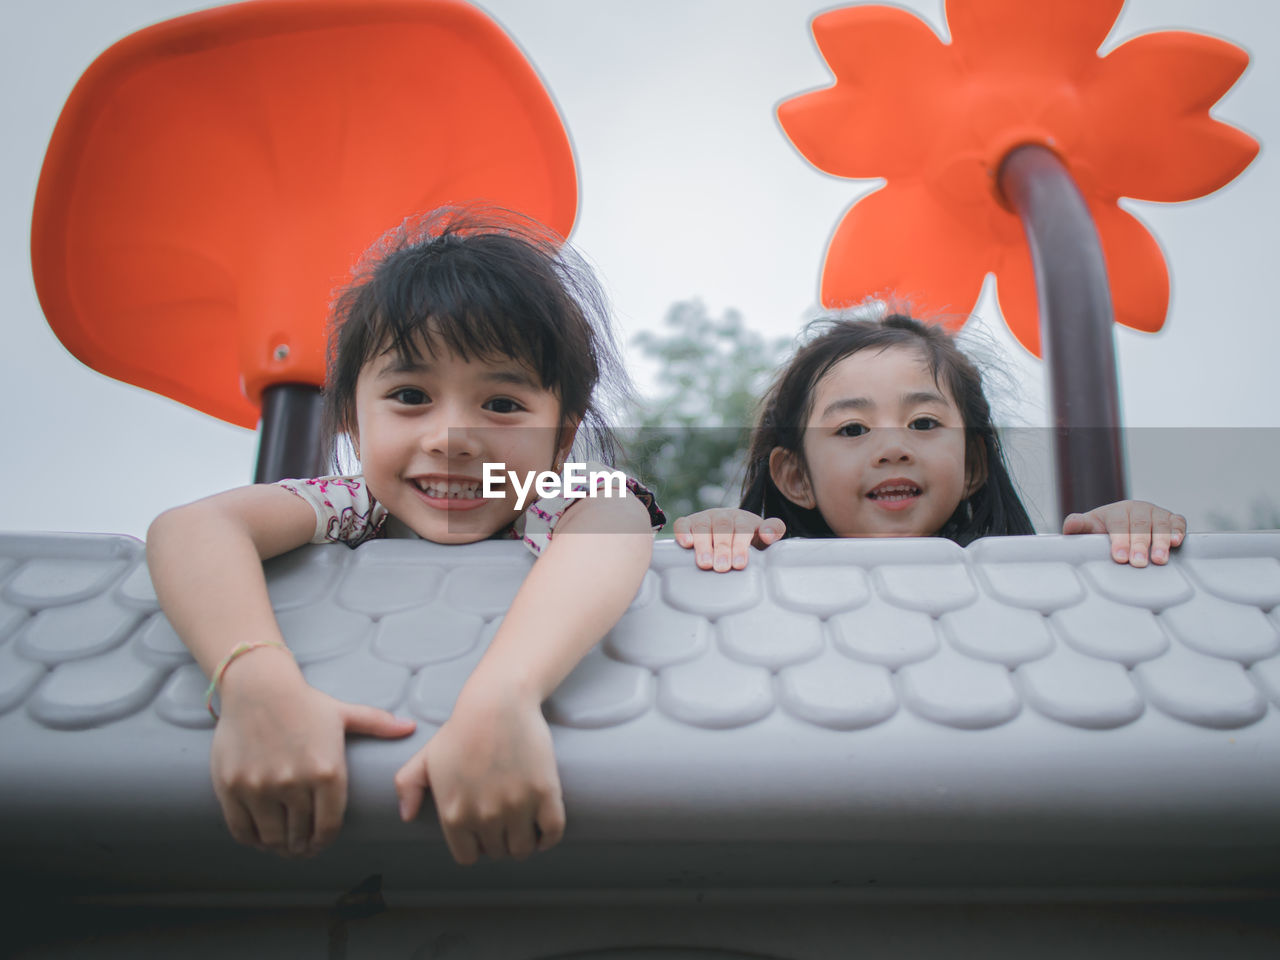 Low angle portrait of cute sisters lying on outdoor play equipment against sky in park